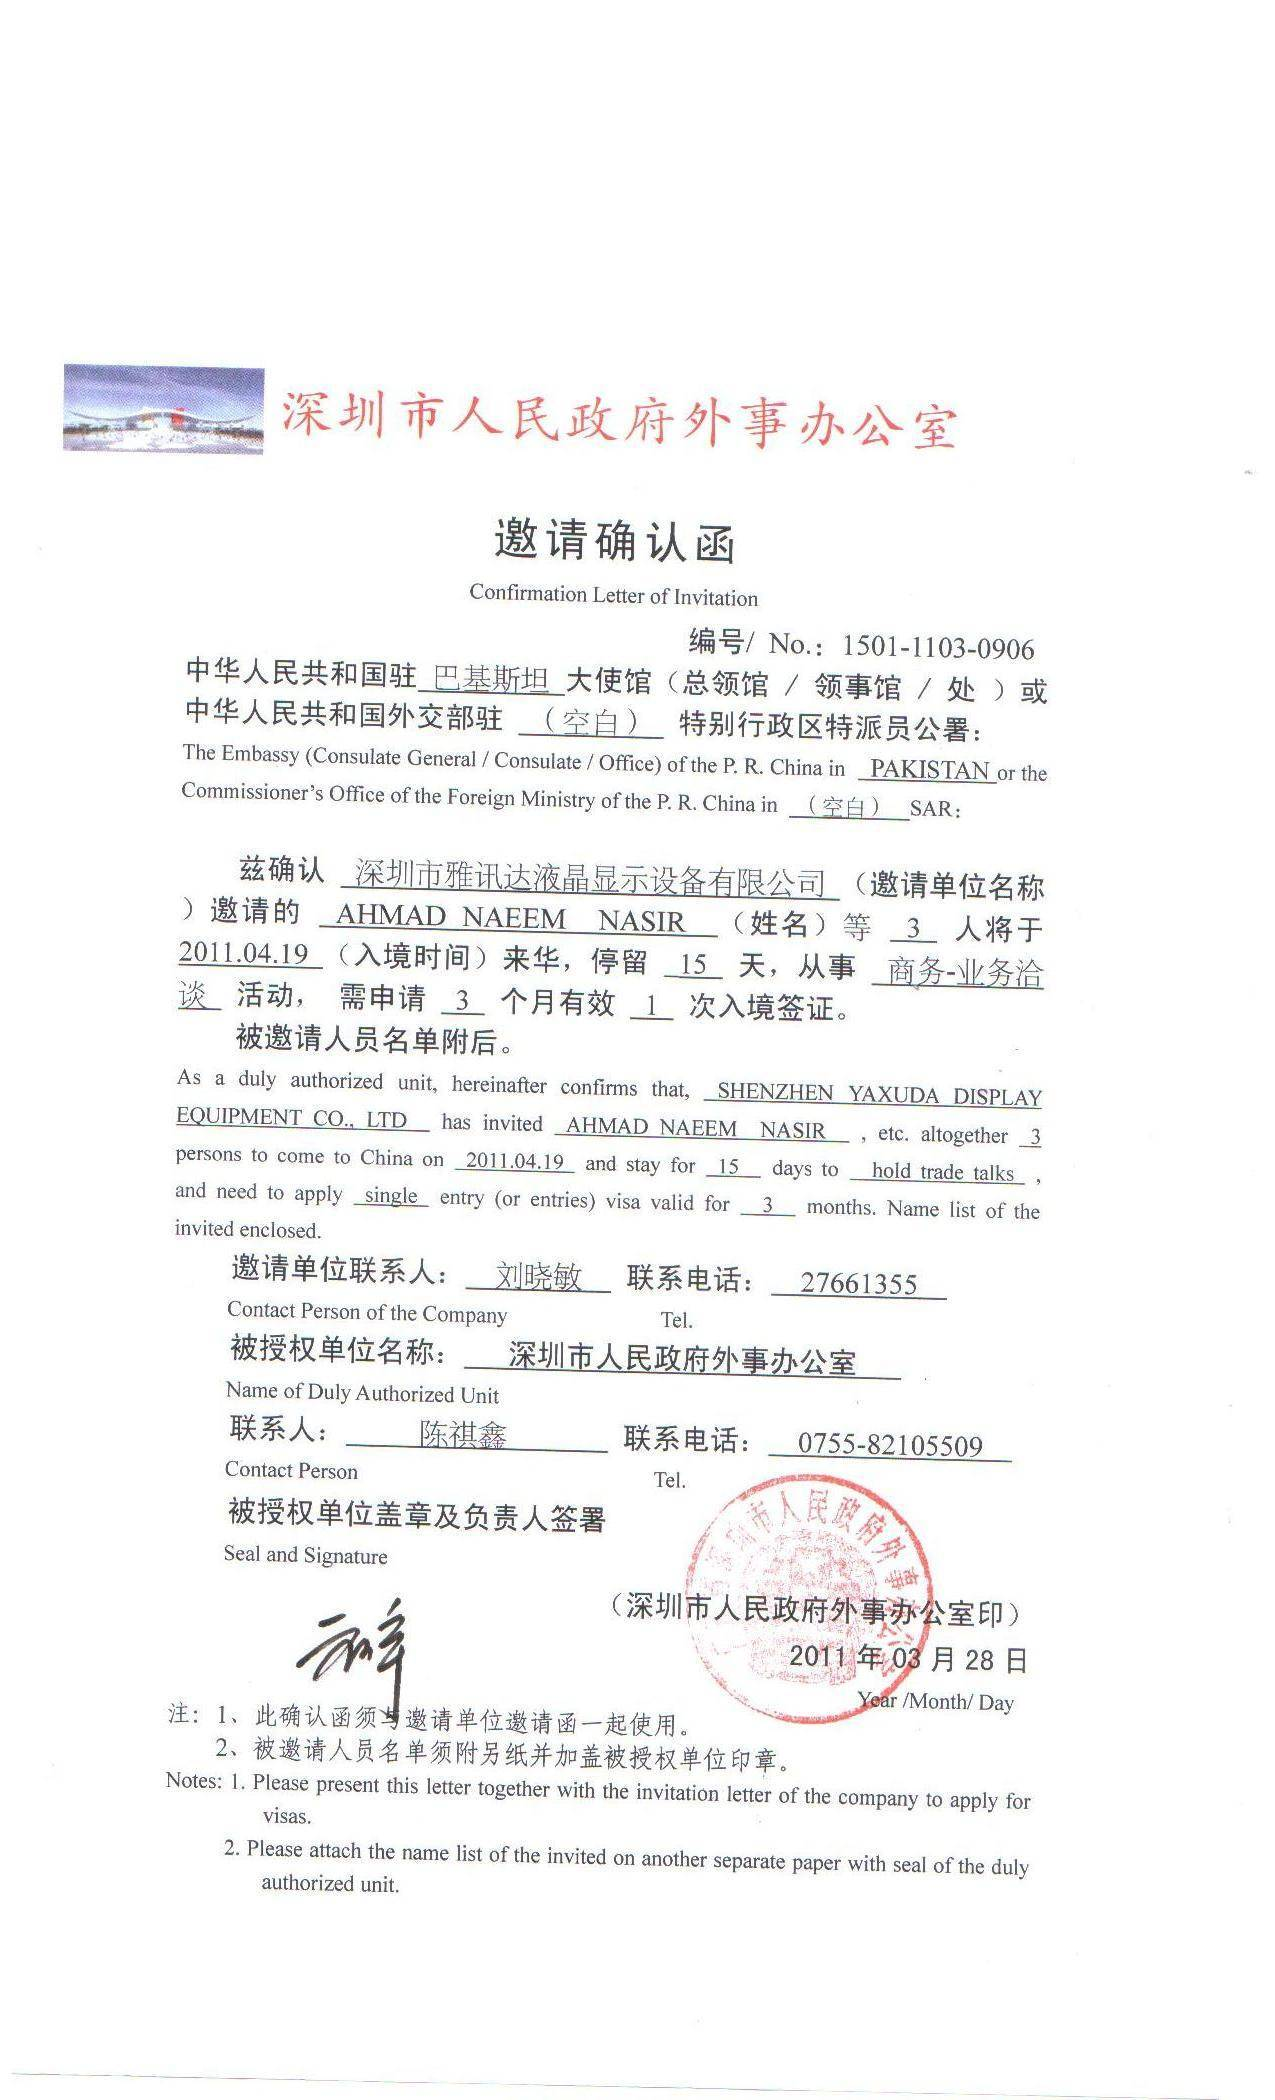 Sample invitation letter for chinese business visa china visa china invitation letter 2 china business invitation altavistaventures Choice Image